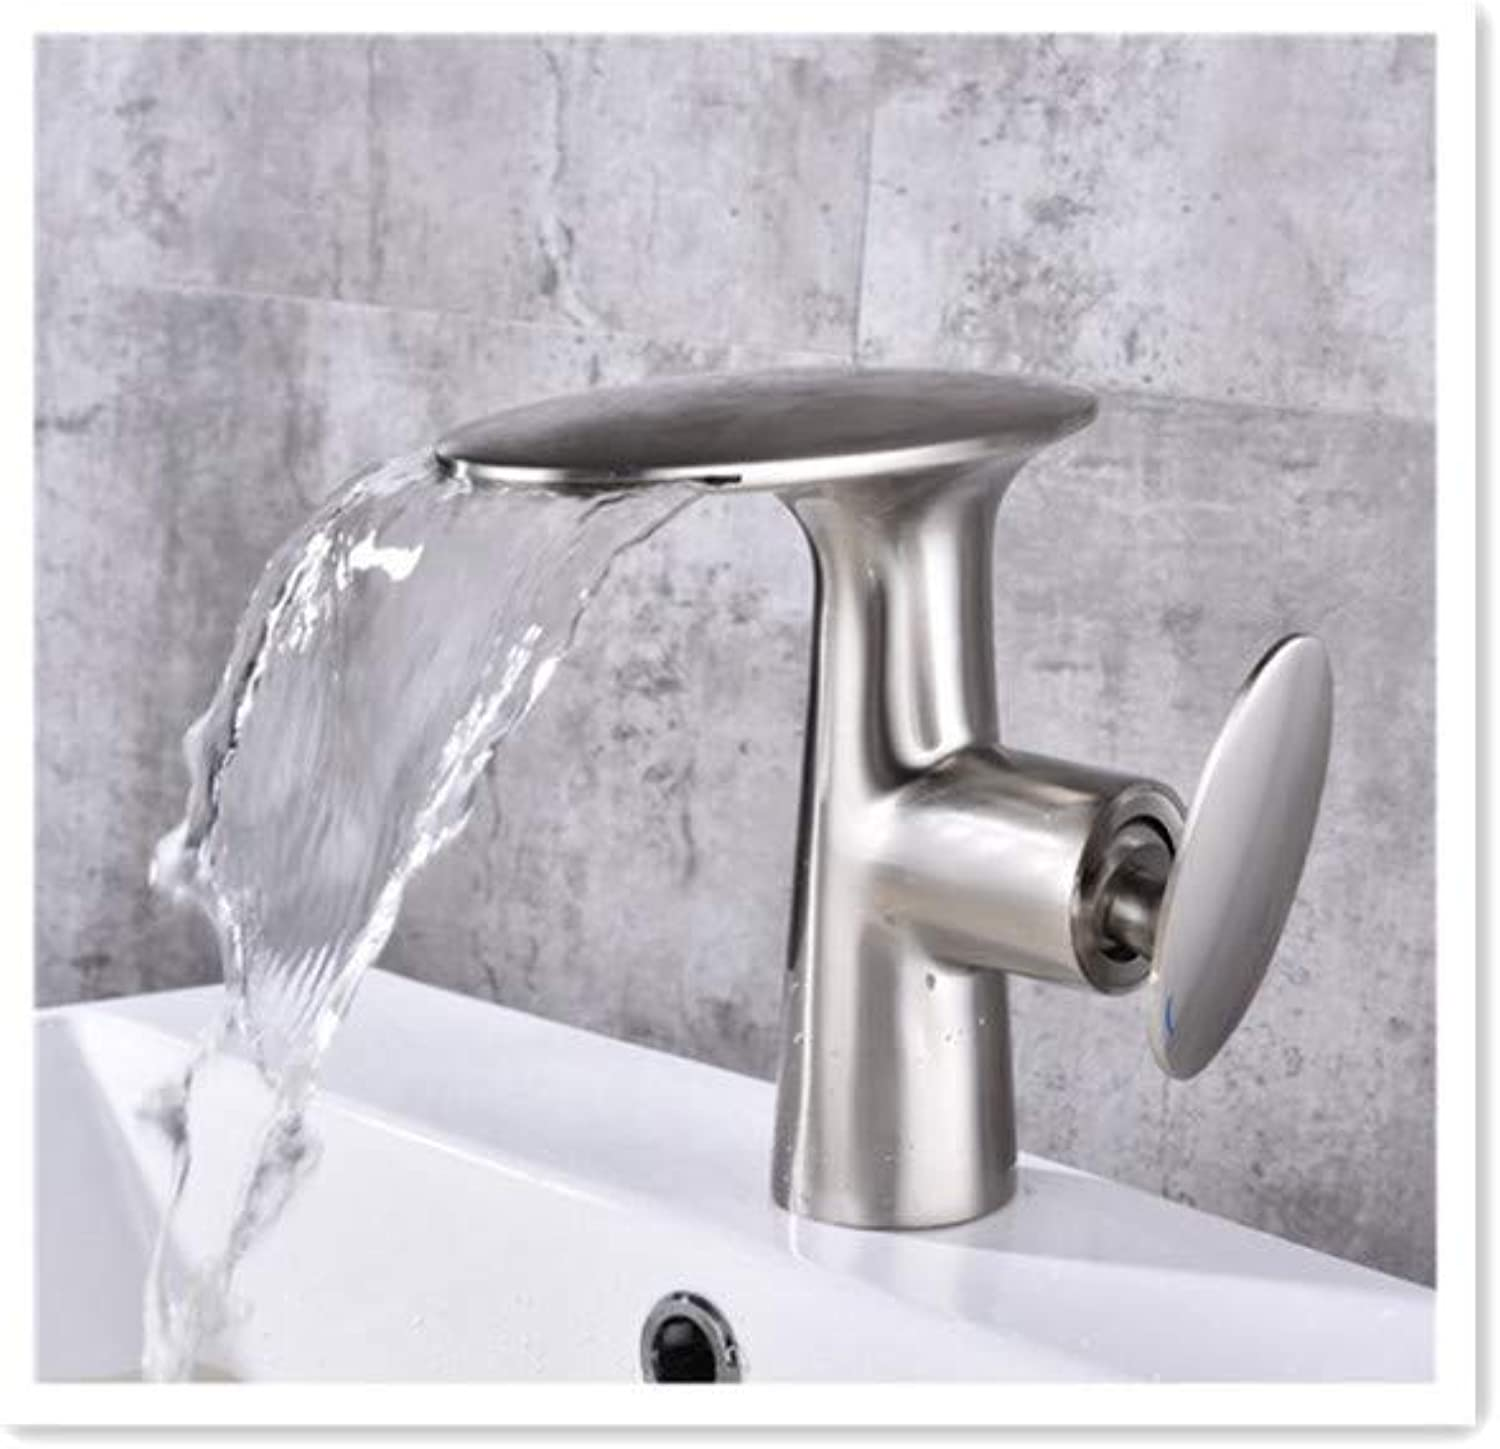 BBQBQQY Copper hot and cold basin faucet, washbasin, washbasin, basin, bathroom, waterfall faucet